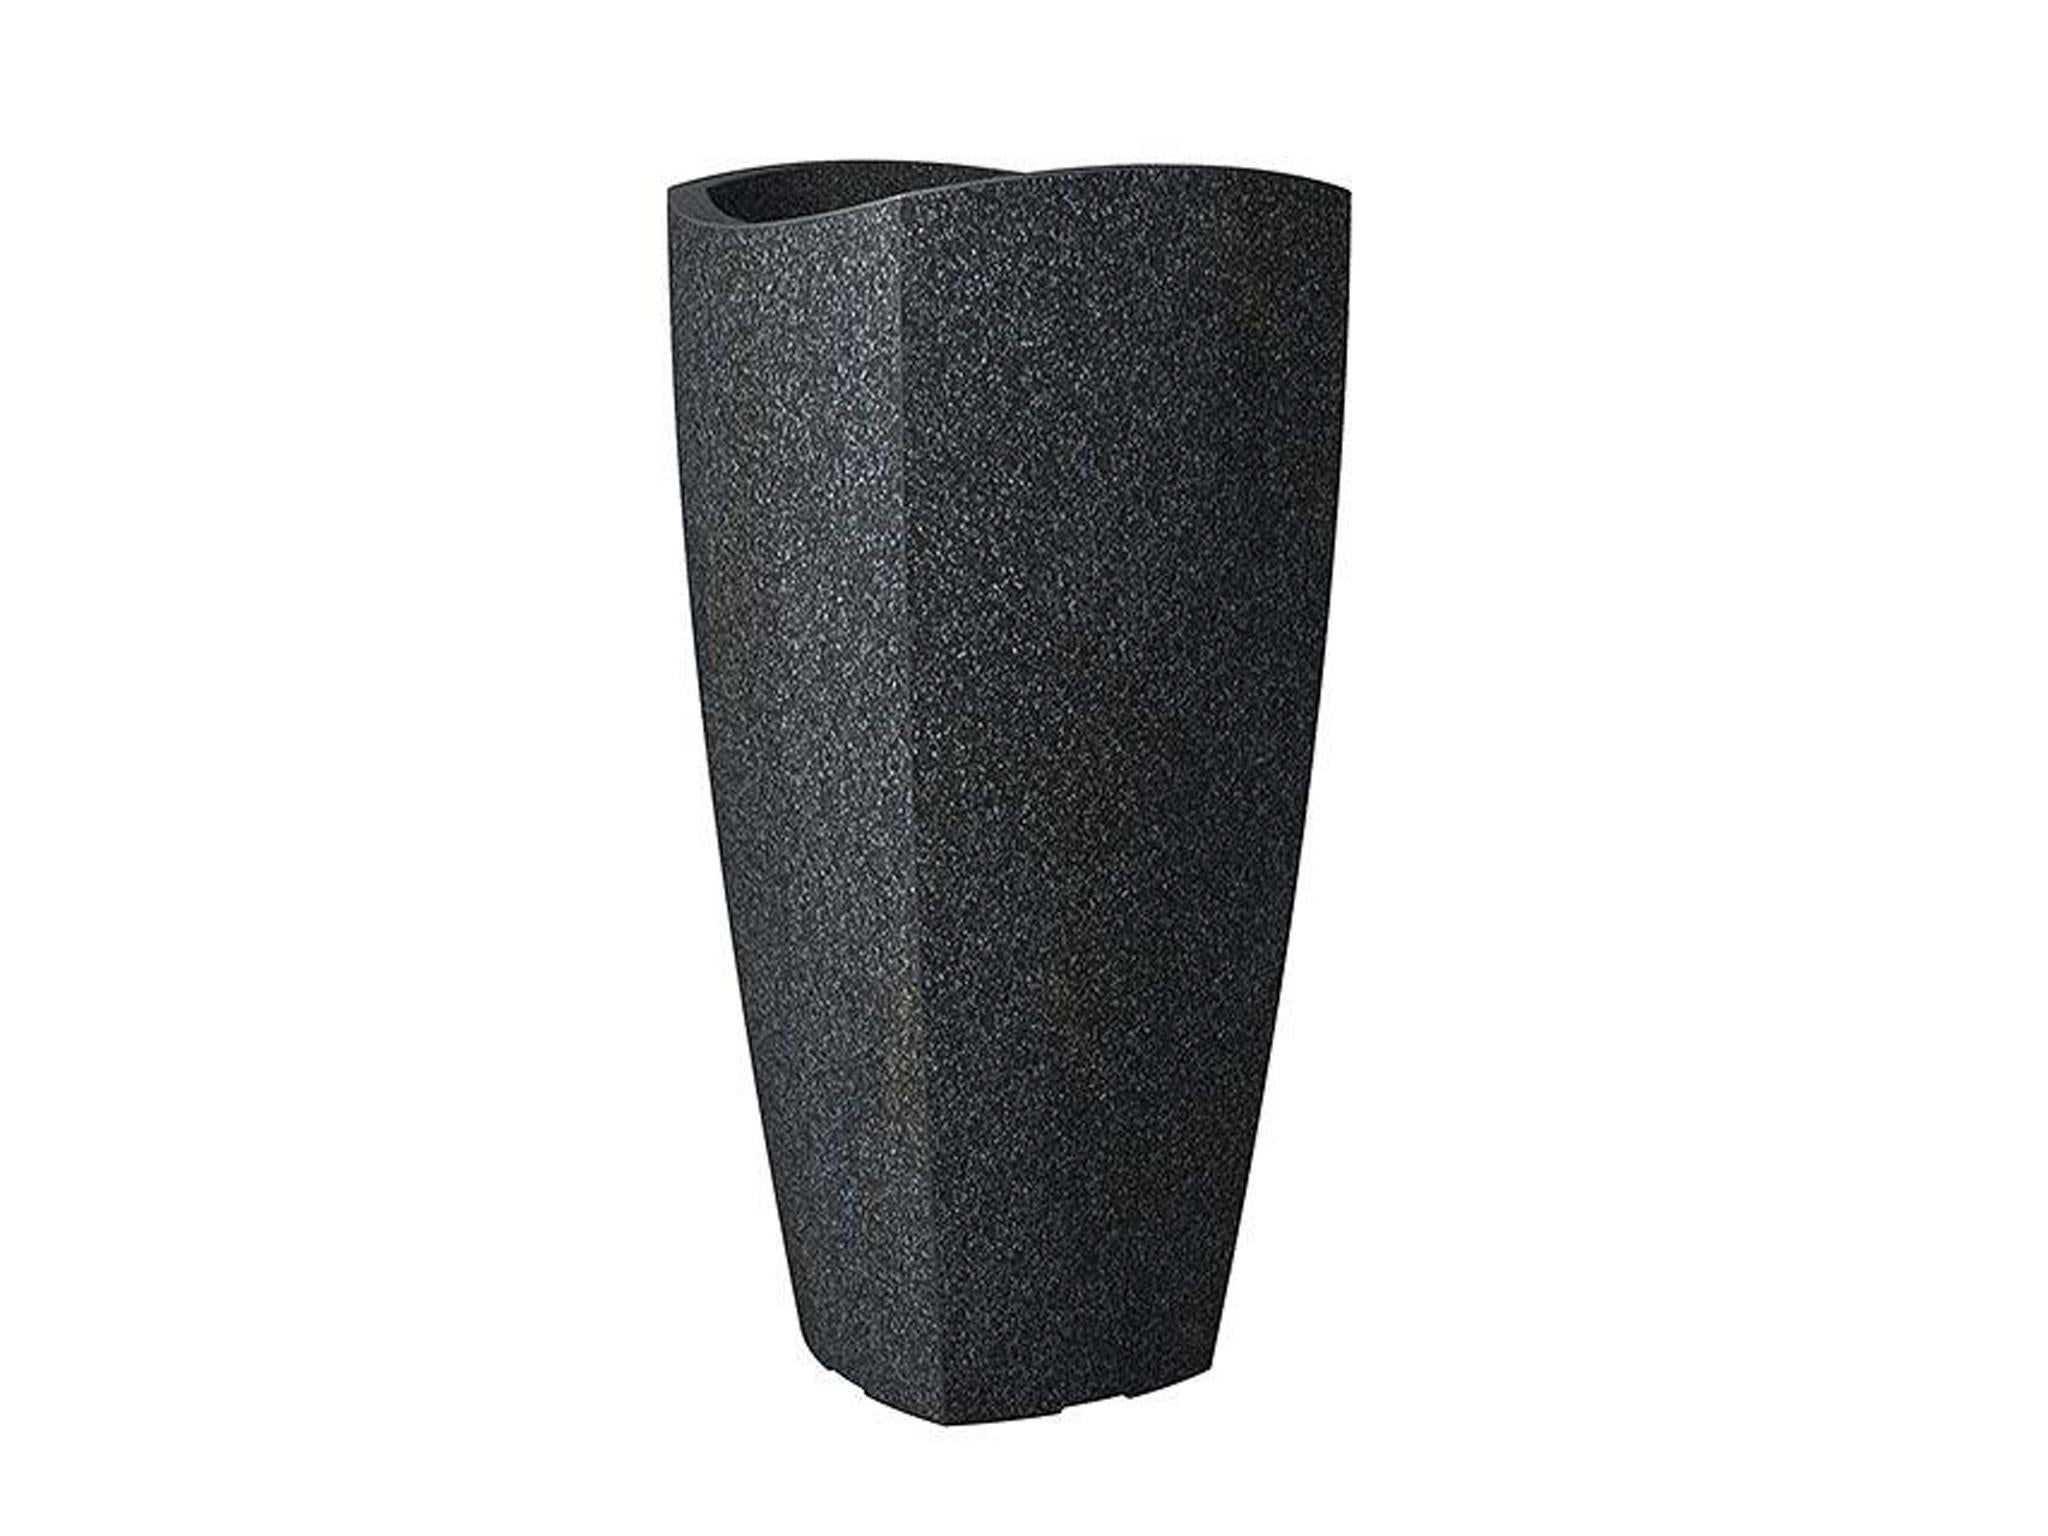 10 best planters   The Independent Zinc Planters Uk Html on round corrugated planters, wall mounted planters, aluminum planters, iron planters, plastic planters, corrugated raised planters, window boxes planters, urn planters, chrome planters, large planters, lead planters, copper finish planters, old planters, resin planters, bucket planters, pewter planters, stainless steel planters, stone planters, long rectangular planters, tall planters,